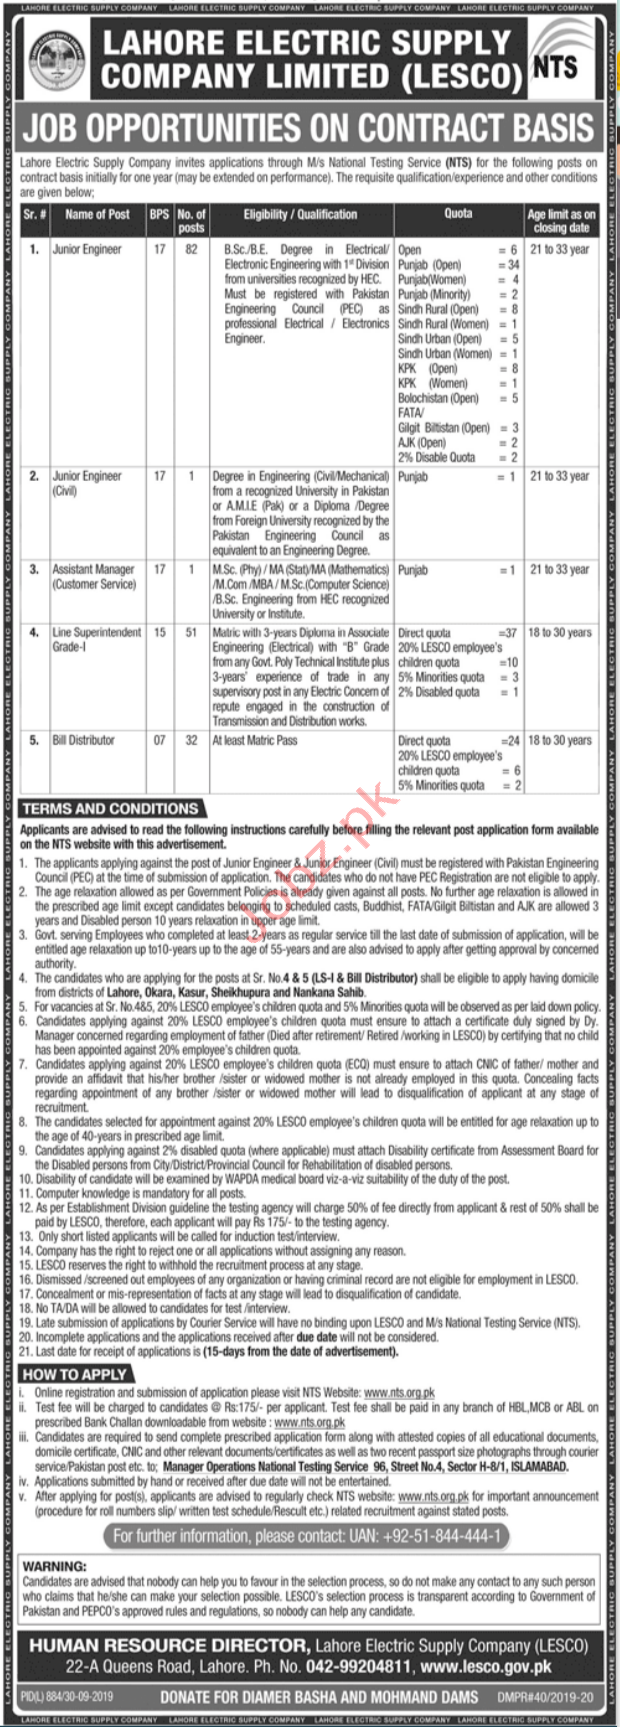 Lahore Electric Supply Company NTS Jobs in Lahore